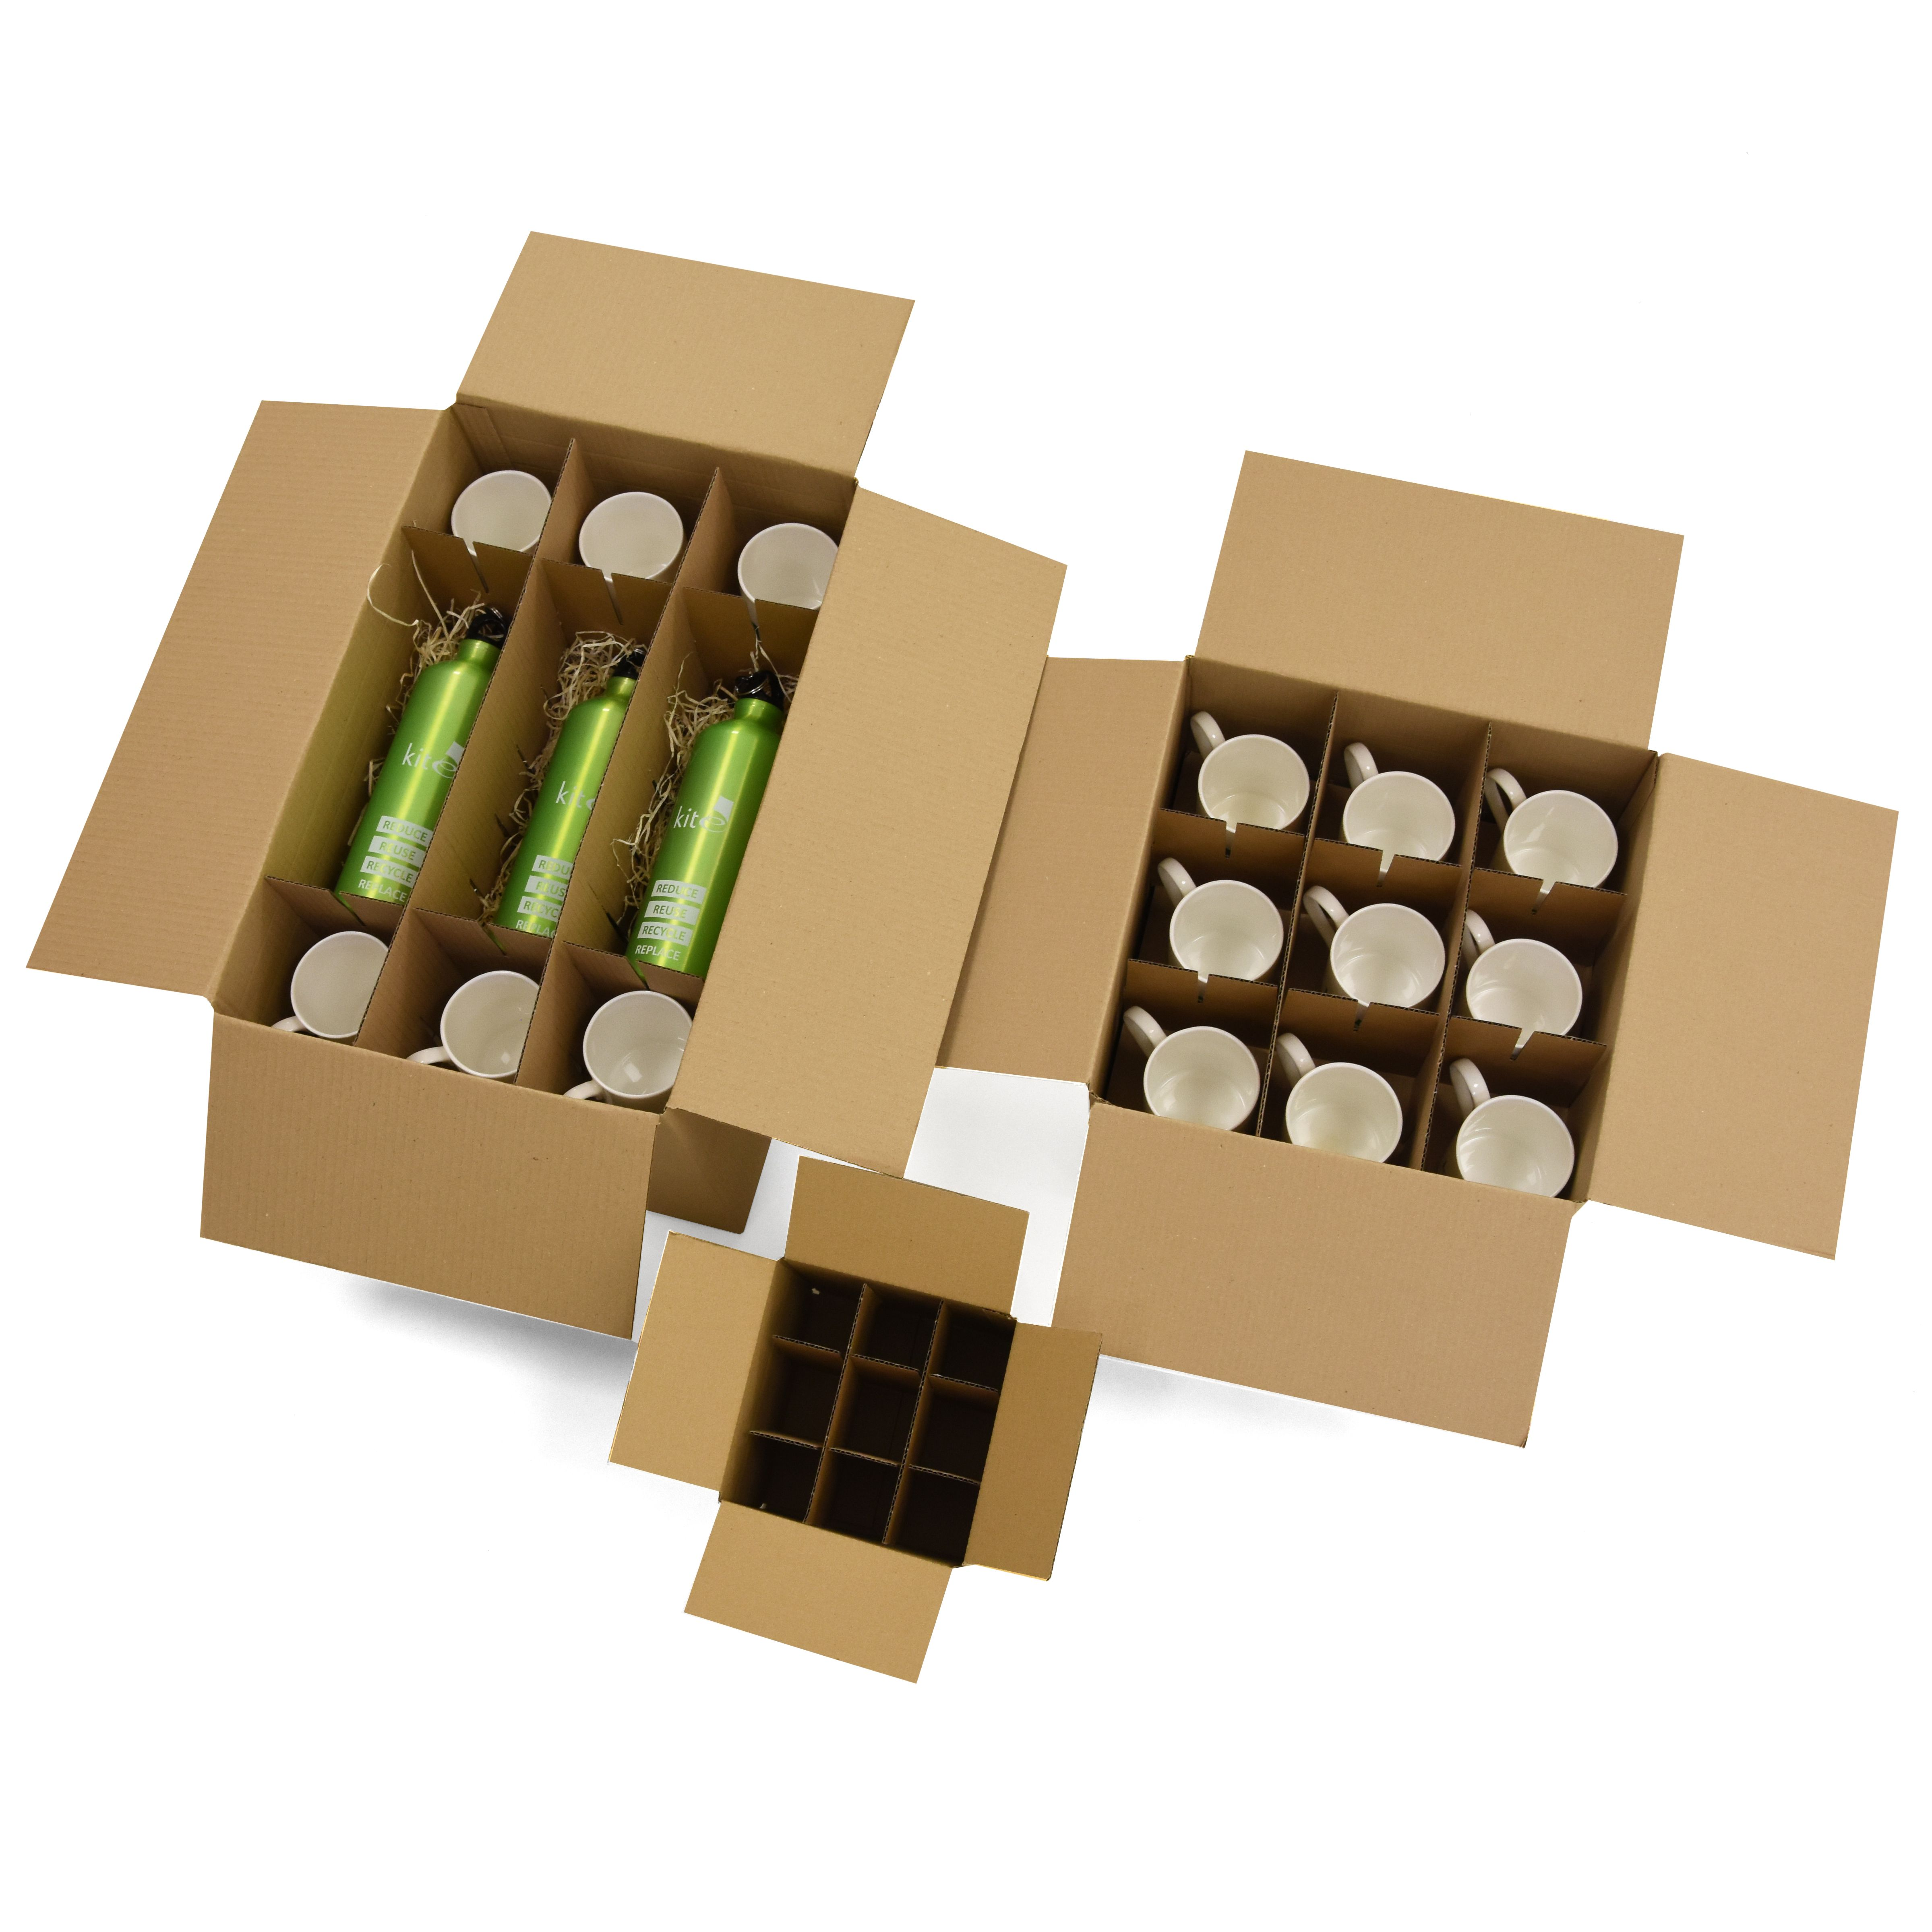 Cardboard Box Dividers You Can Optimise The Space In Your Carton Boxes With Our 100